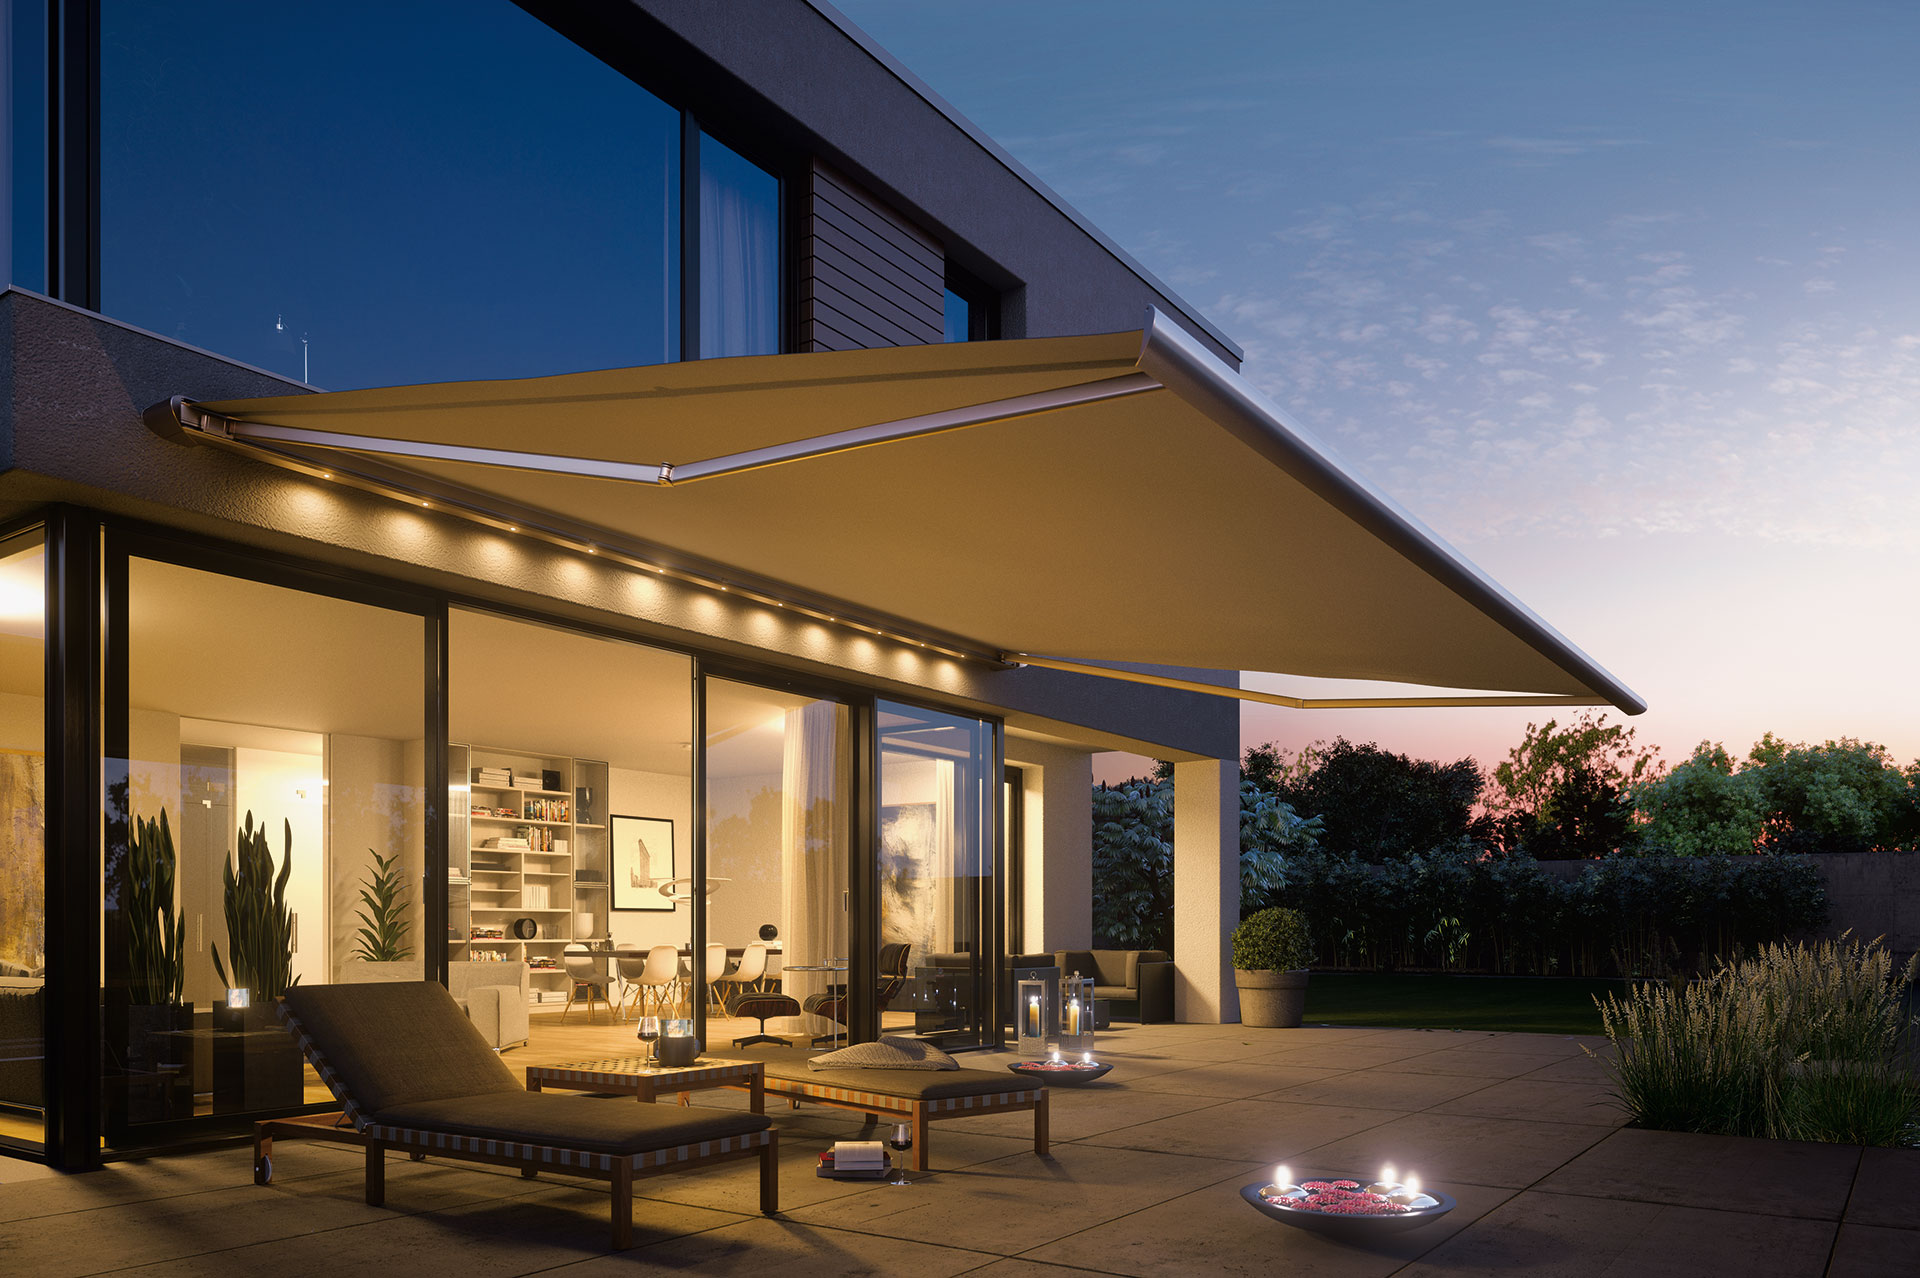 Ozshade Folding Arm Awnings 15